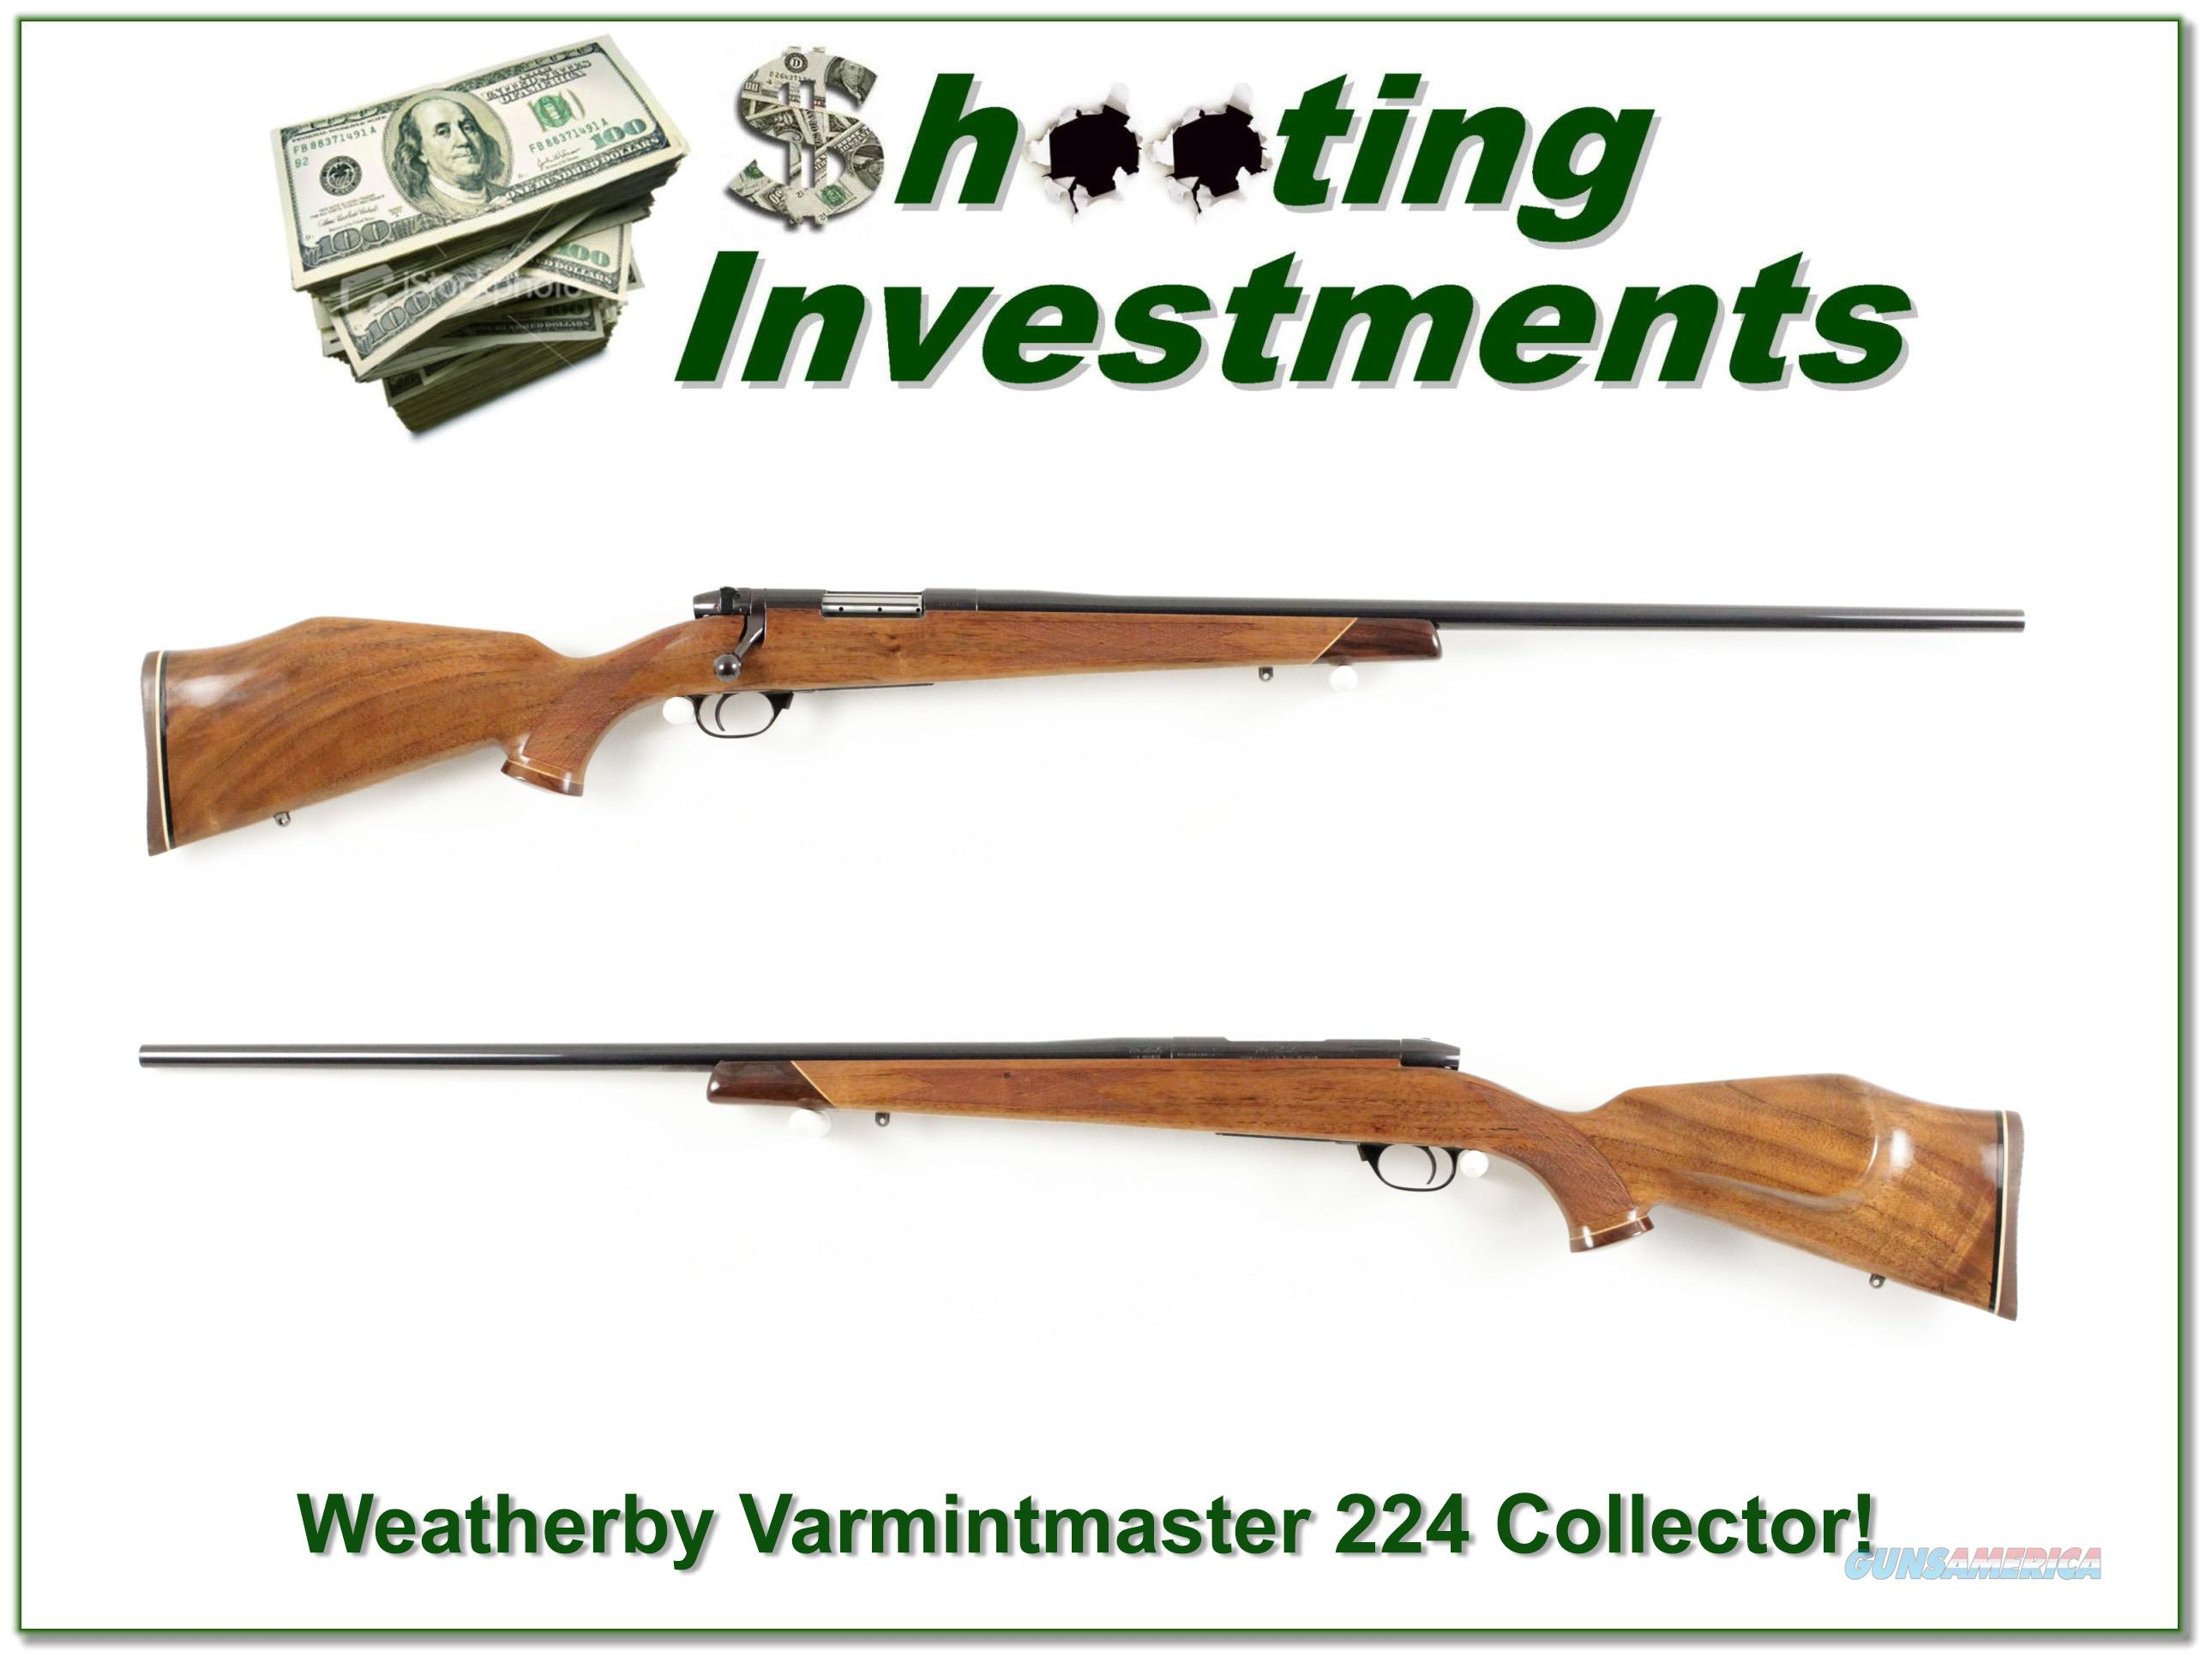 Weatherby Mark V Varmintmaster 224 26in Collector!  Guns > Rifles > Weatherby Rifles > Sporting